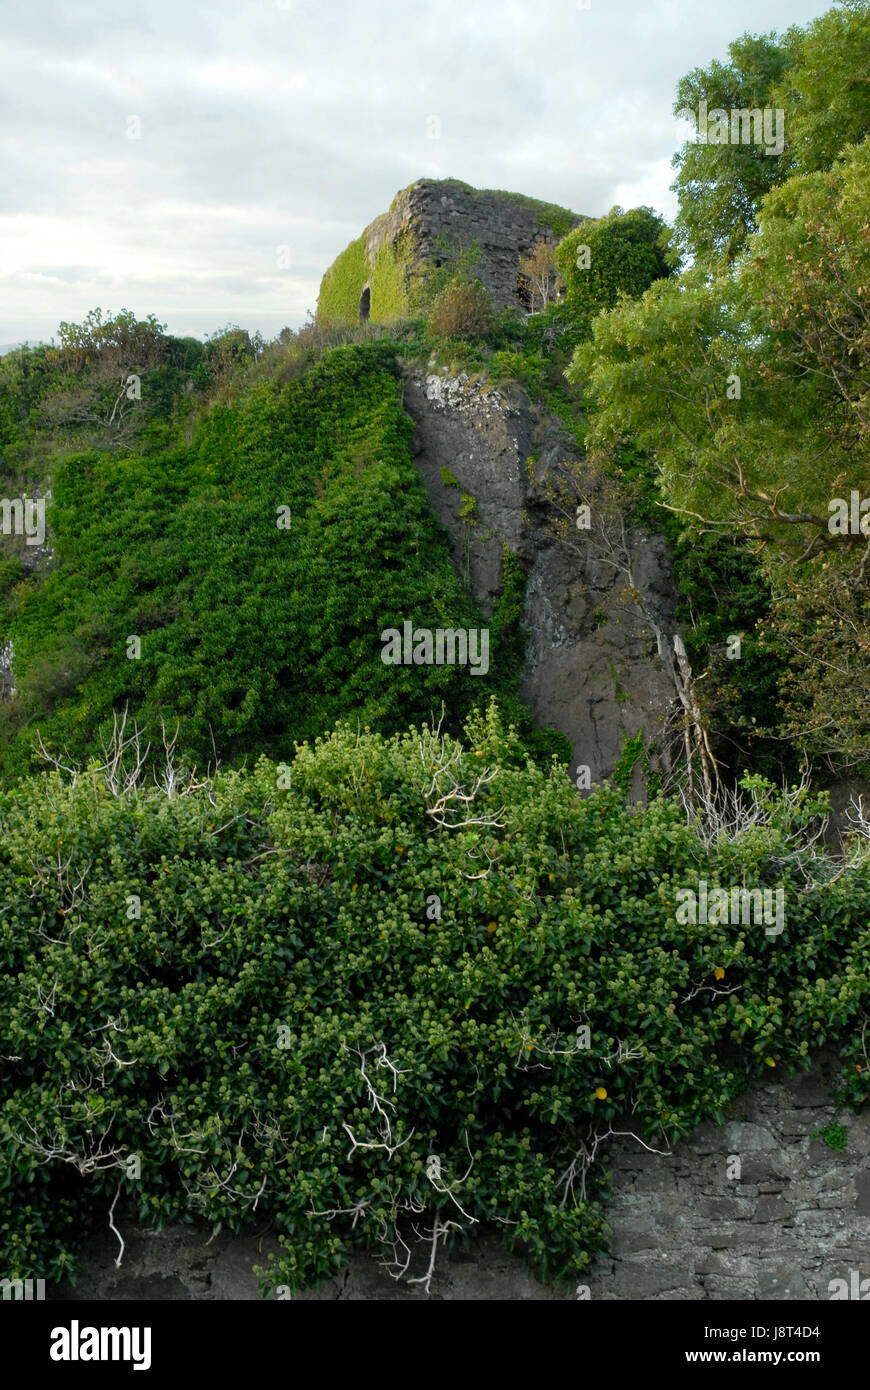 plant, ruin, scotland, history, middle ages, tower, historical, plant, towers, Stock Photo